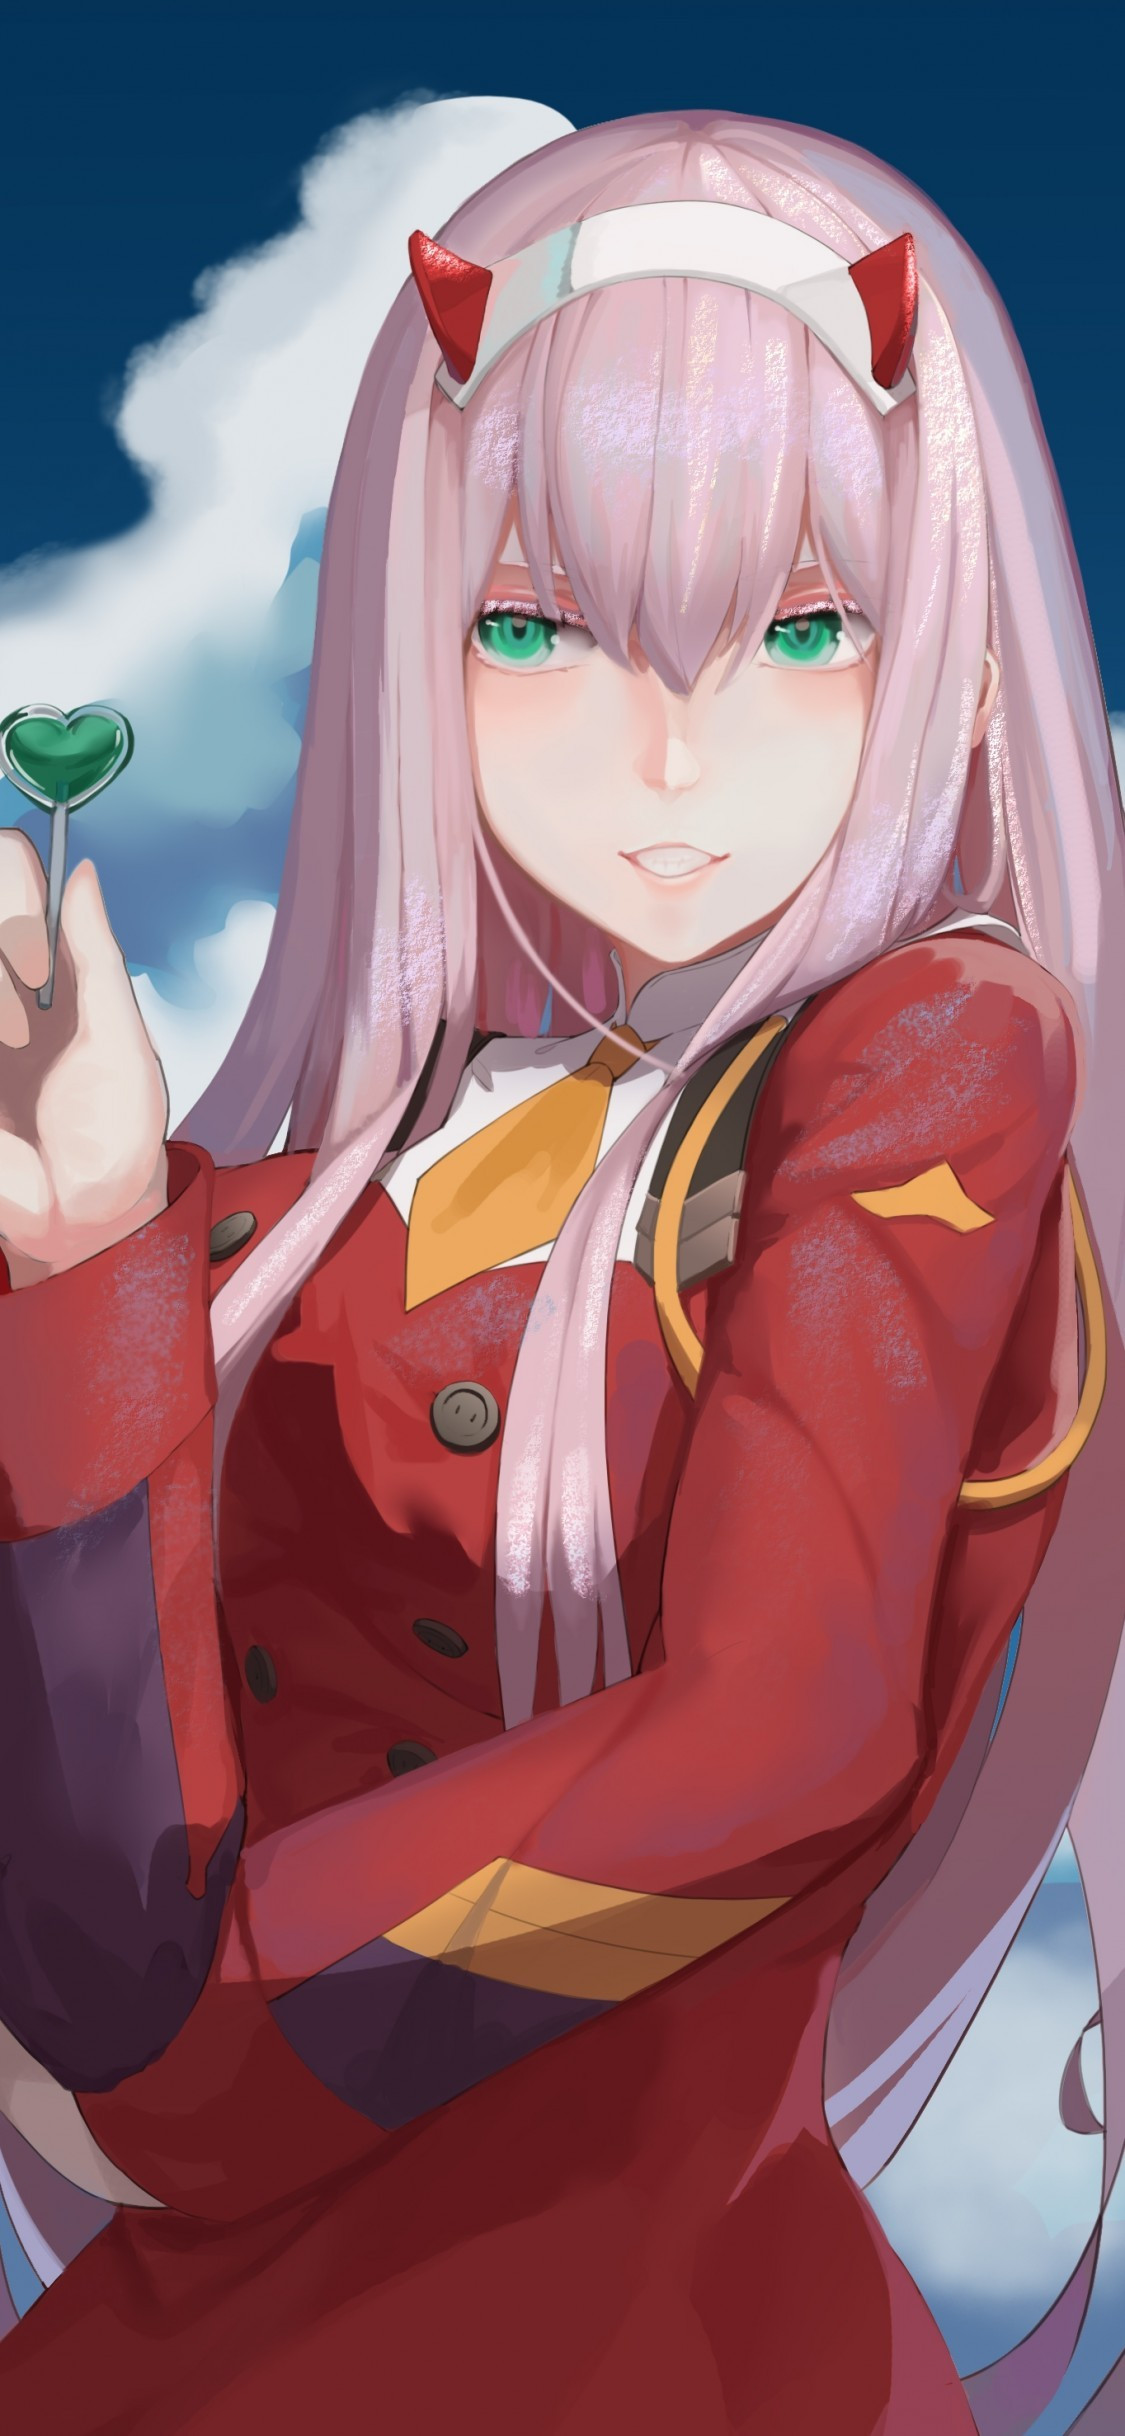 zero two darling in the franxx pink hair